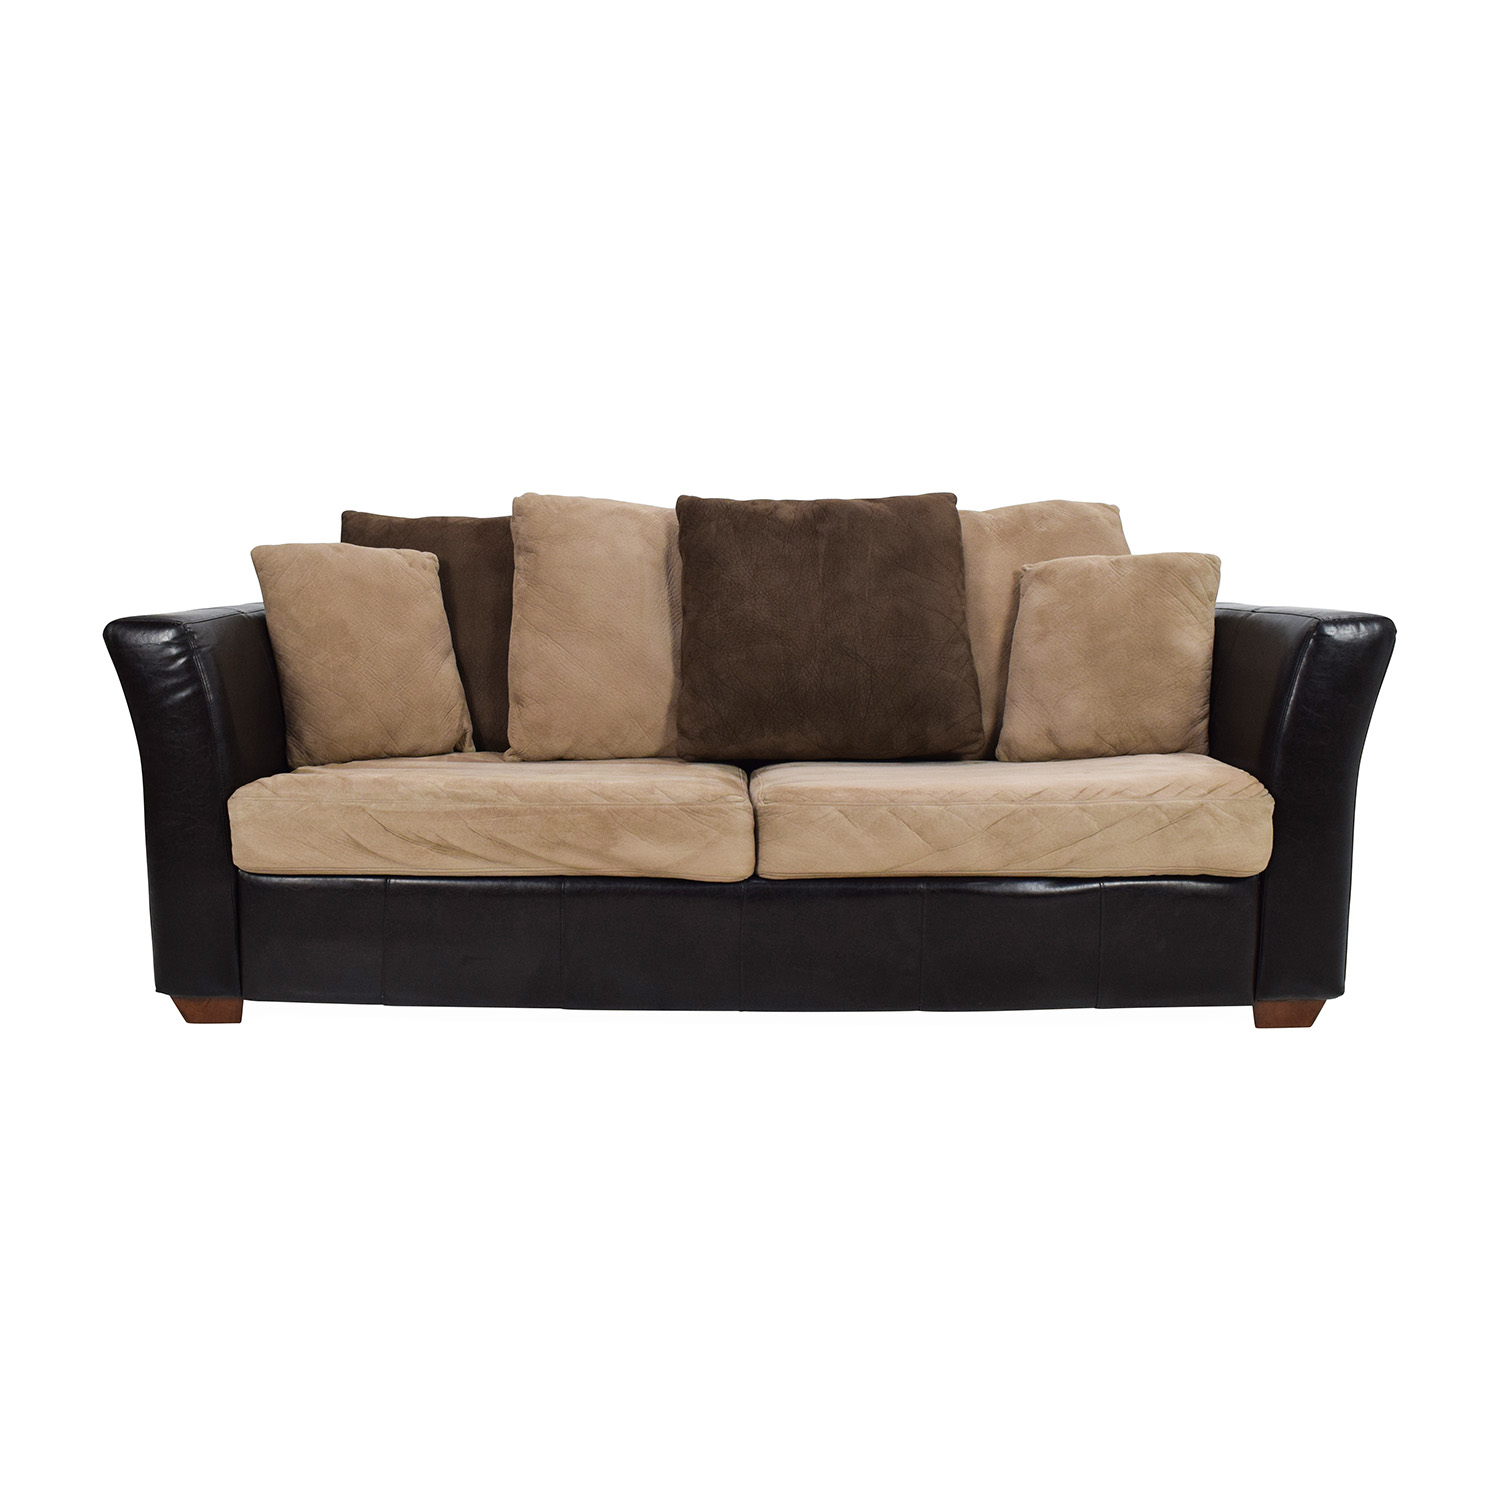 Jennifer Convertibles Sleeper Sofa Clic Sofas